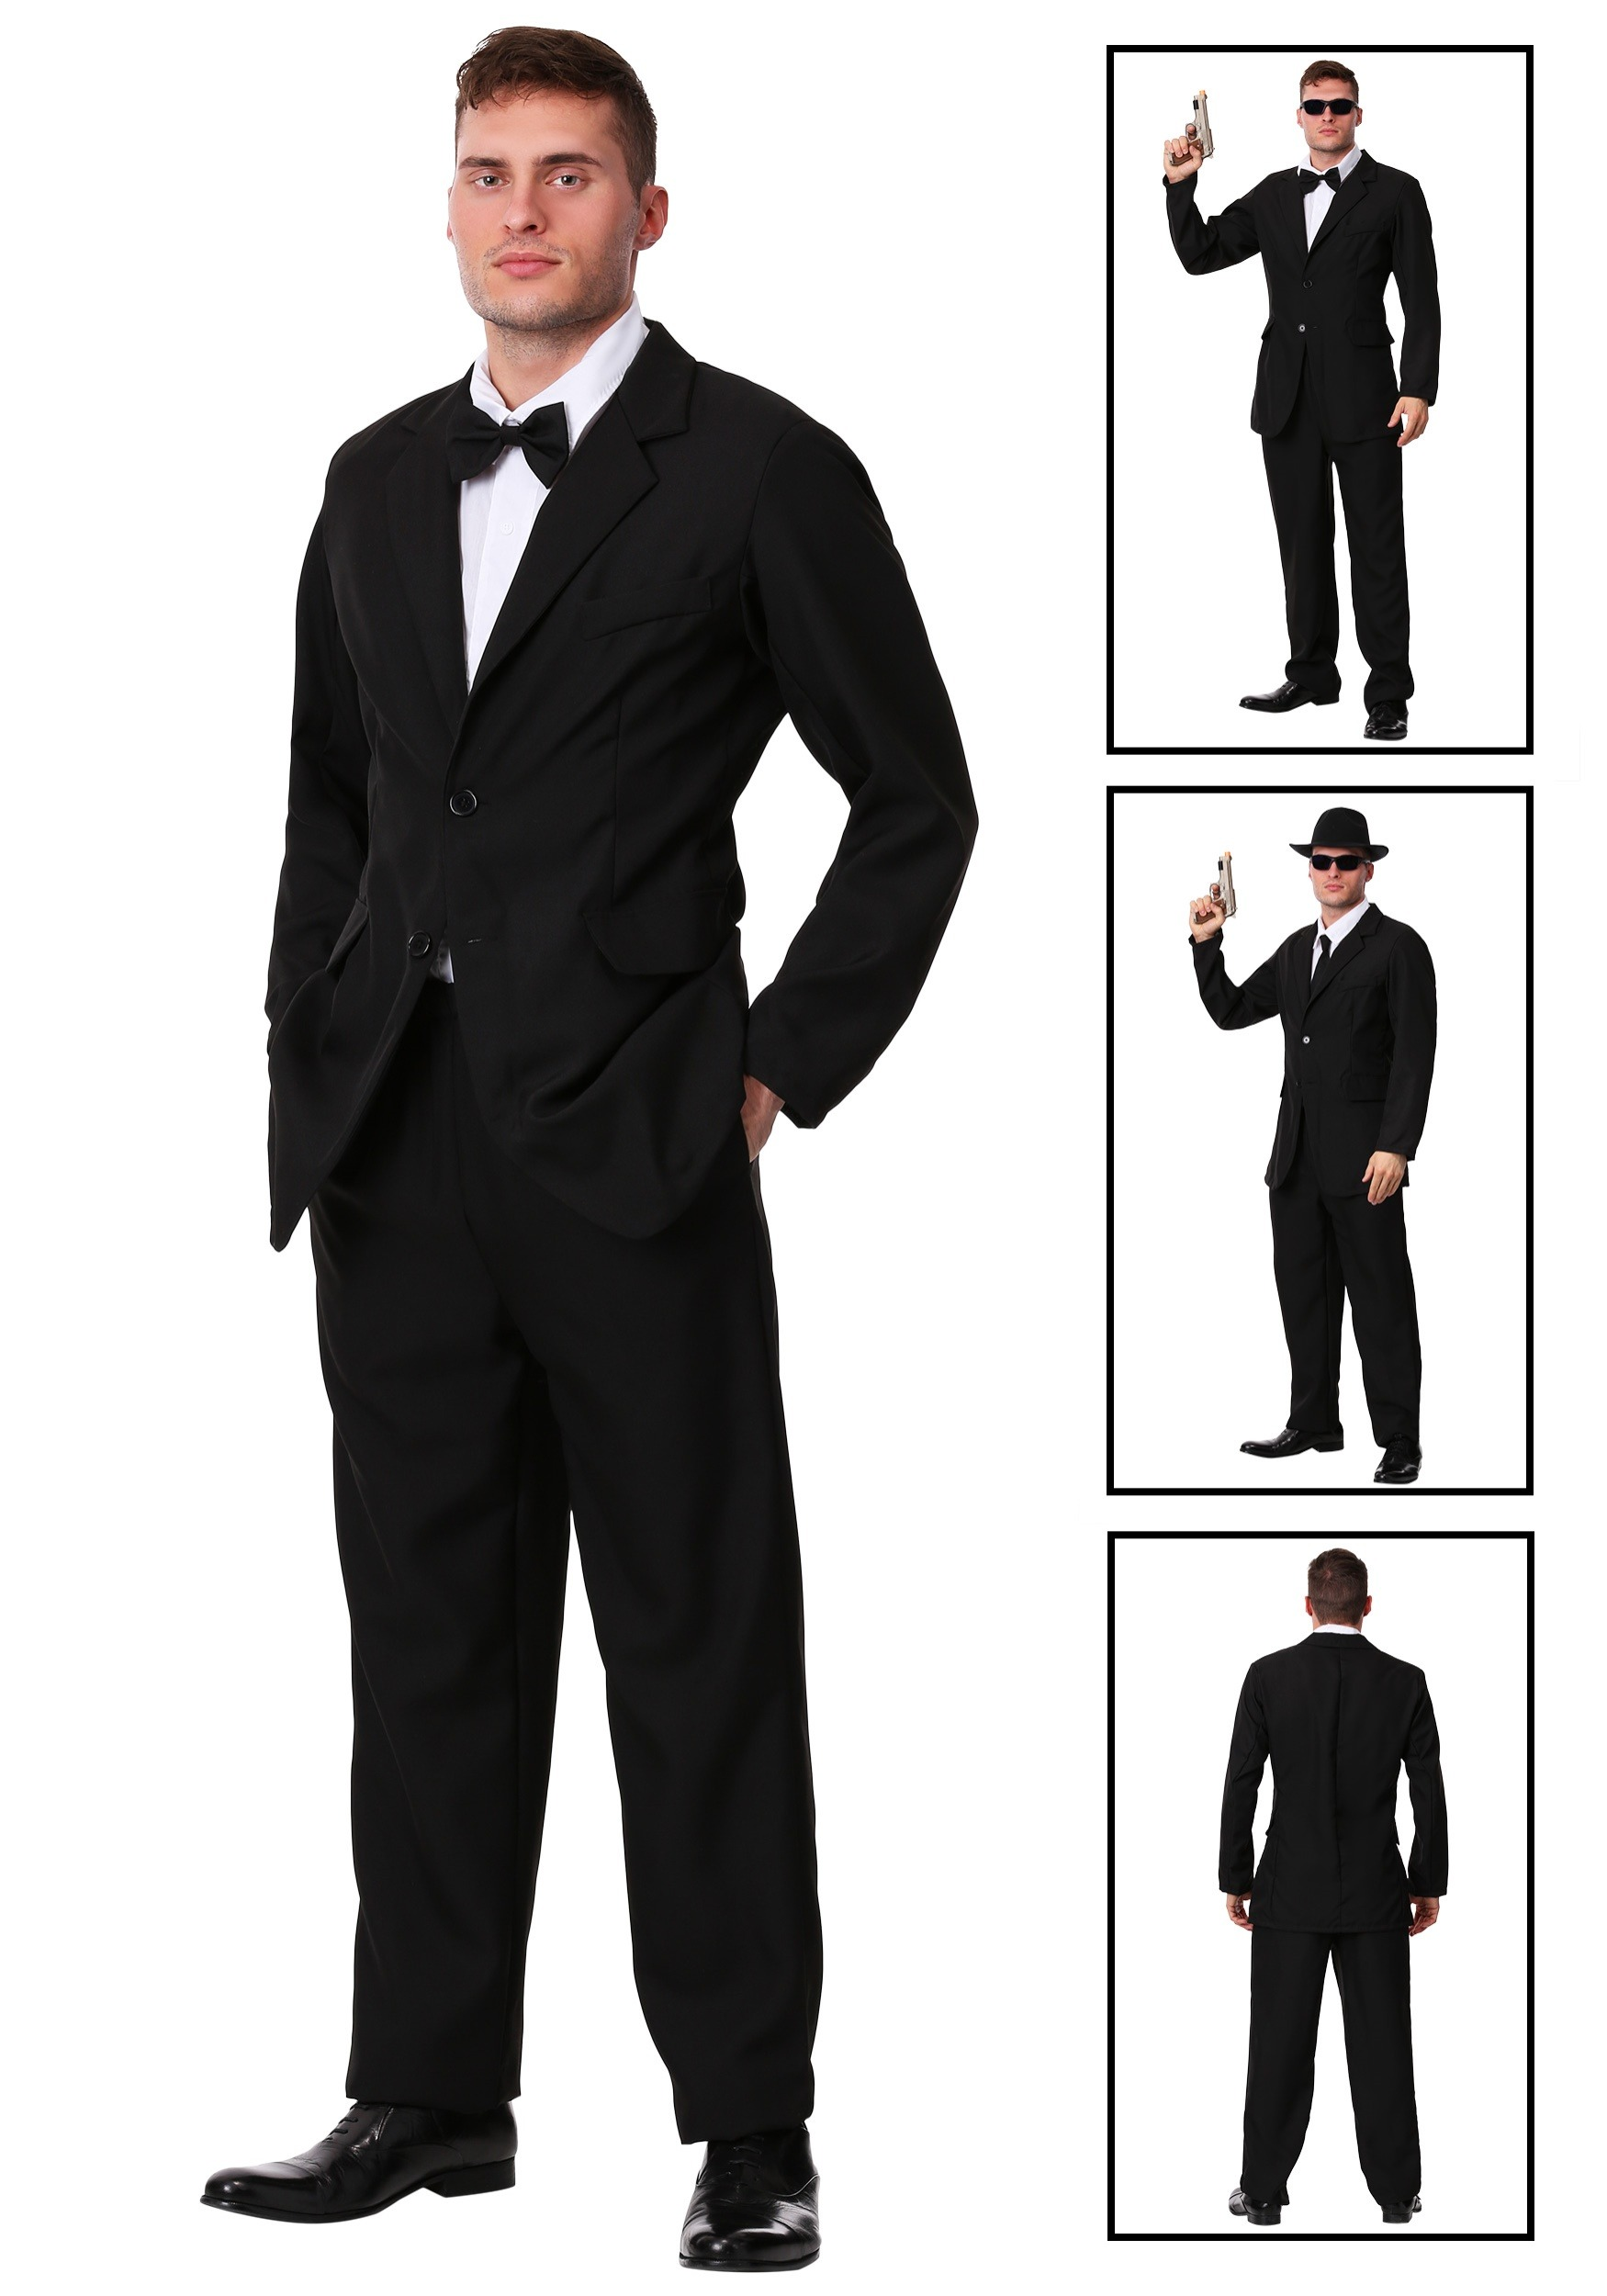 Plus 007 Black Suit Costume